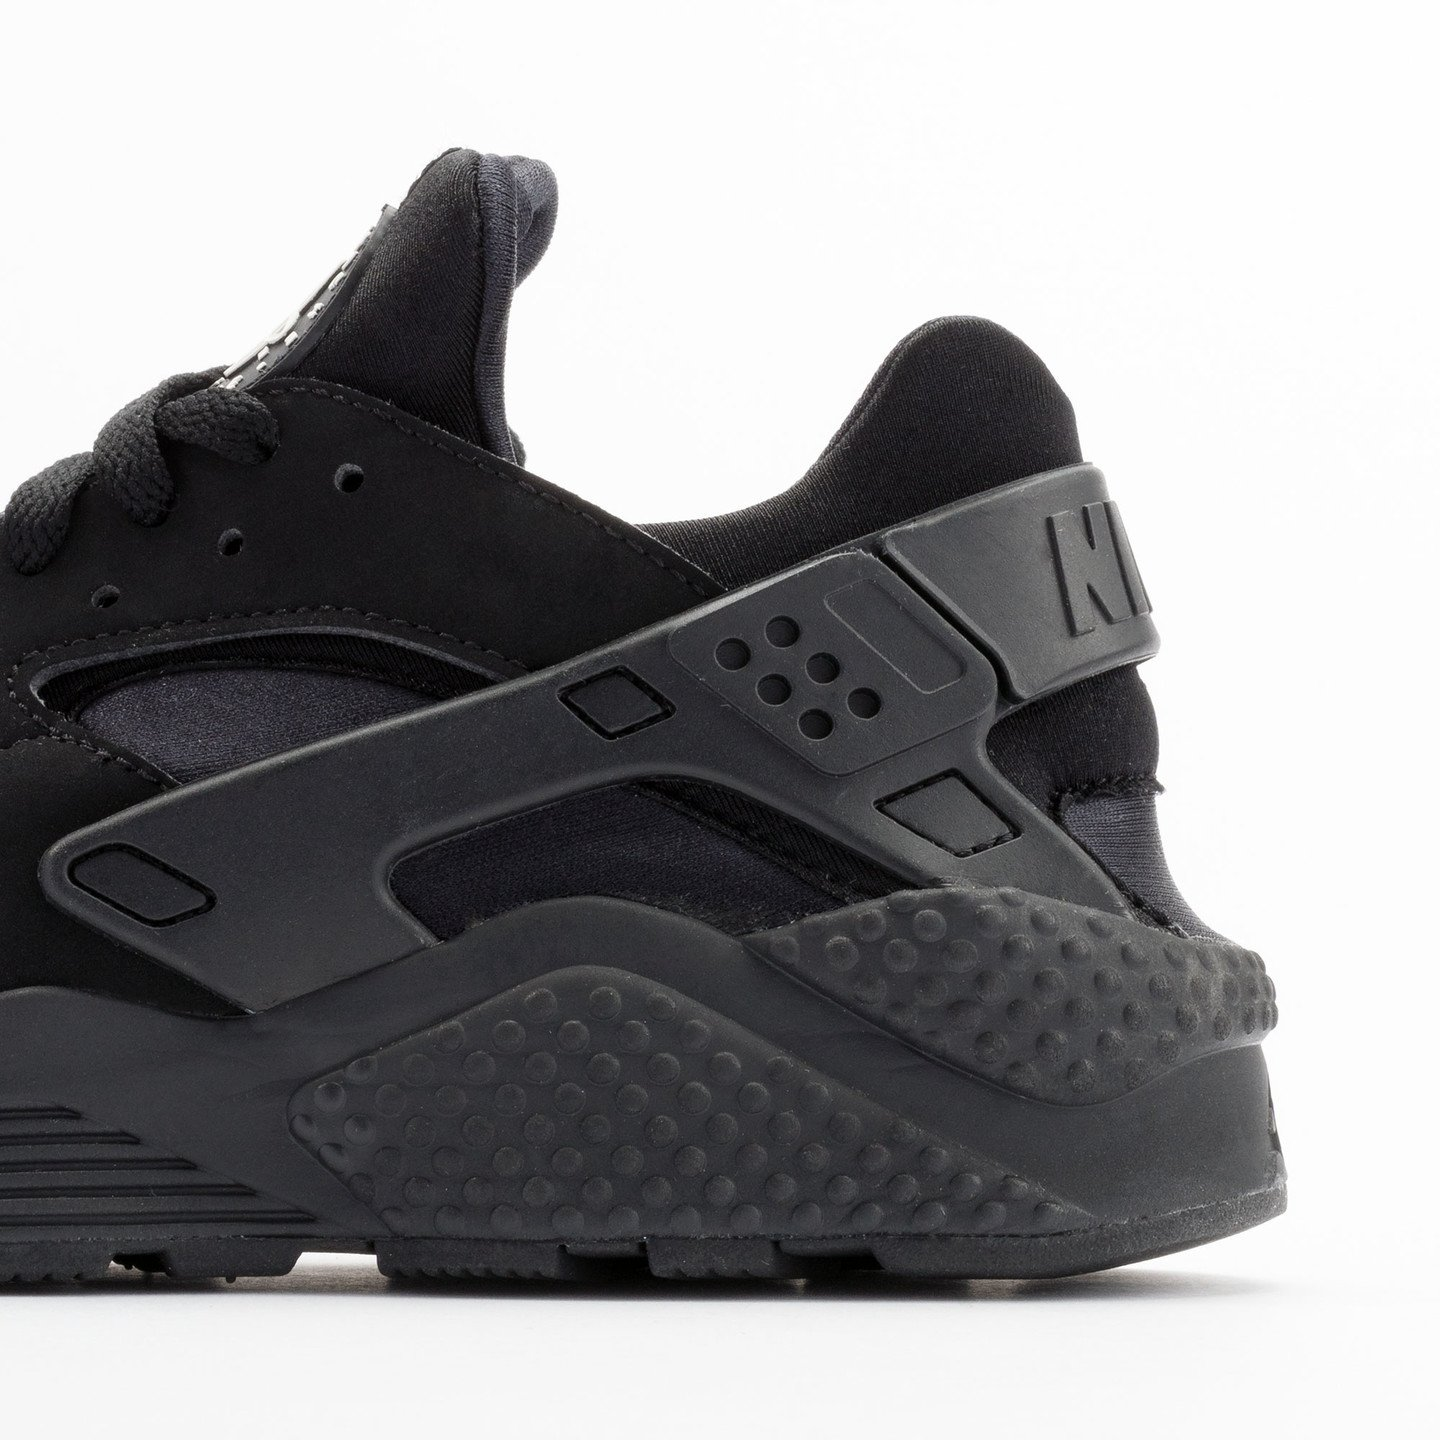 Nike Air Huarache Black/Black-White 318429-003-43